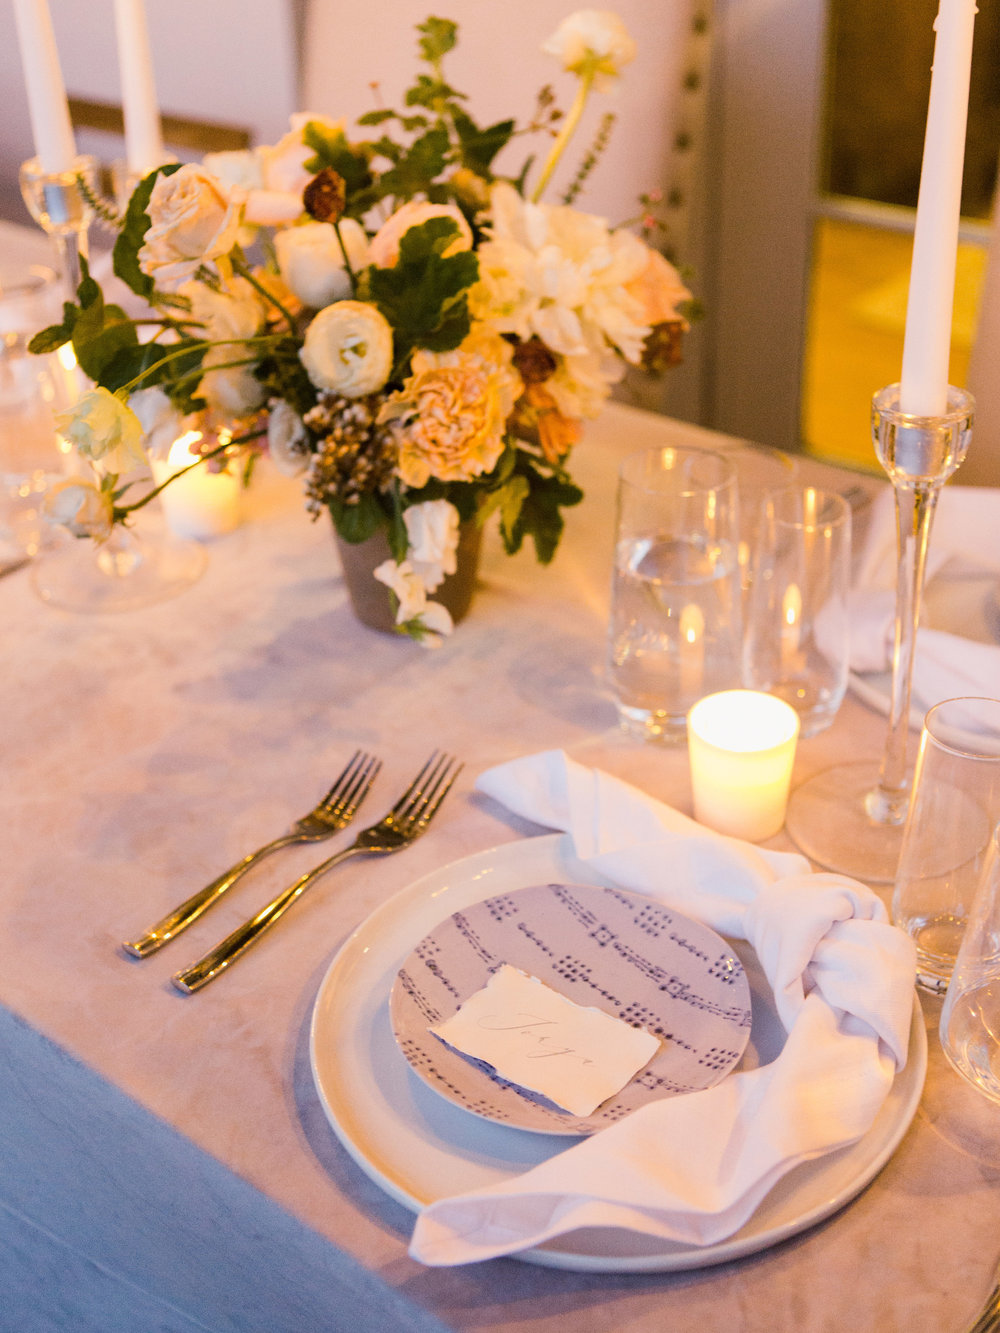 jessica-zimmerman-events-wedding-intimate-reception-place-setting.jpg